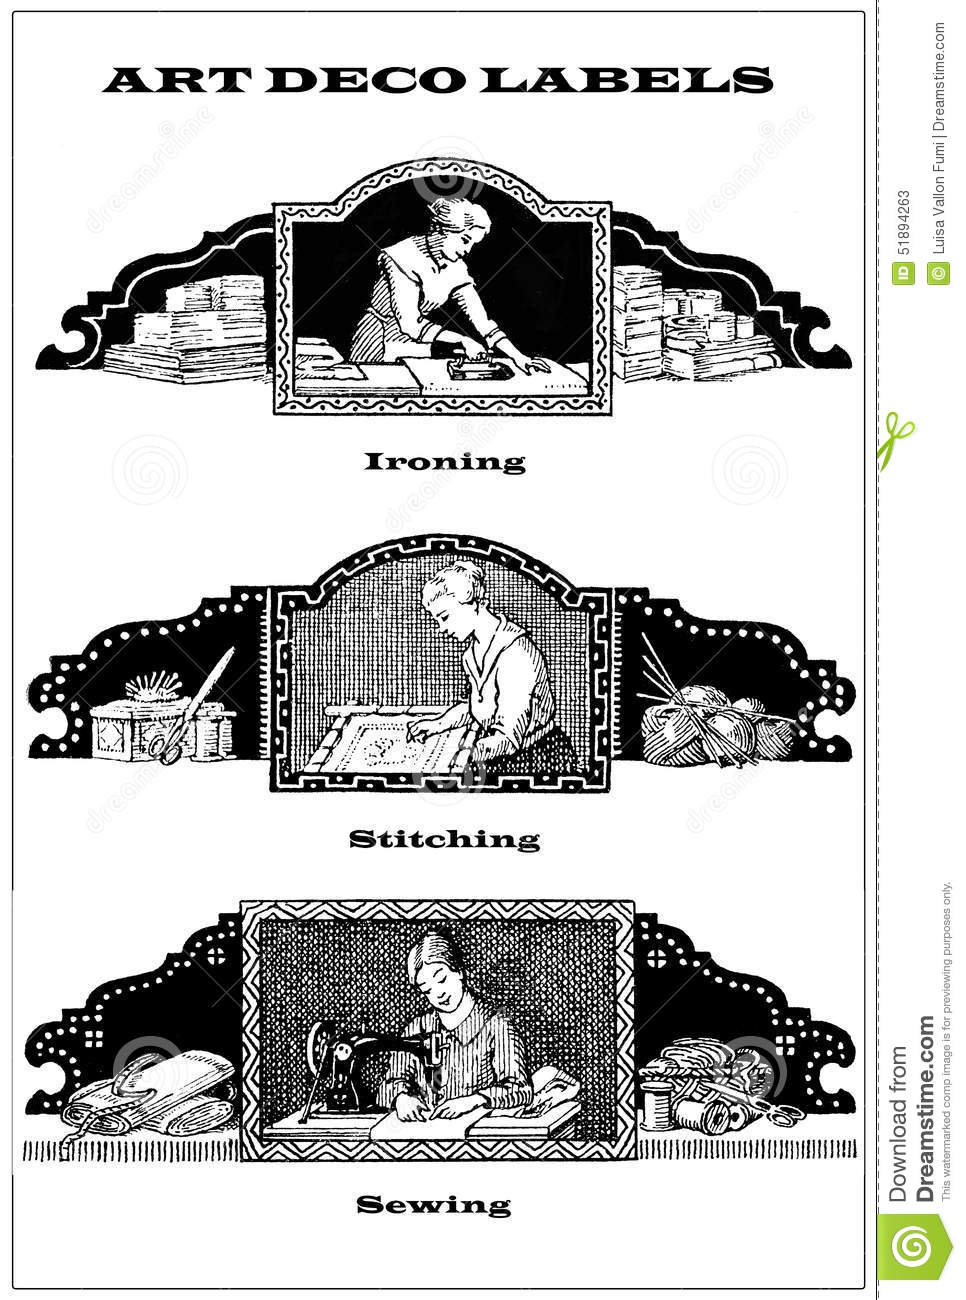 Collage Of 3 Art Deco Labels About Domestic Chores And